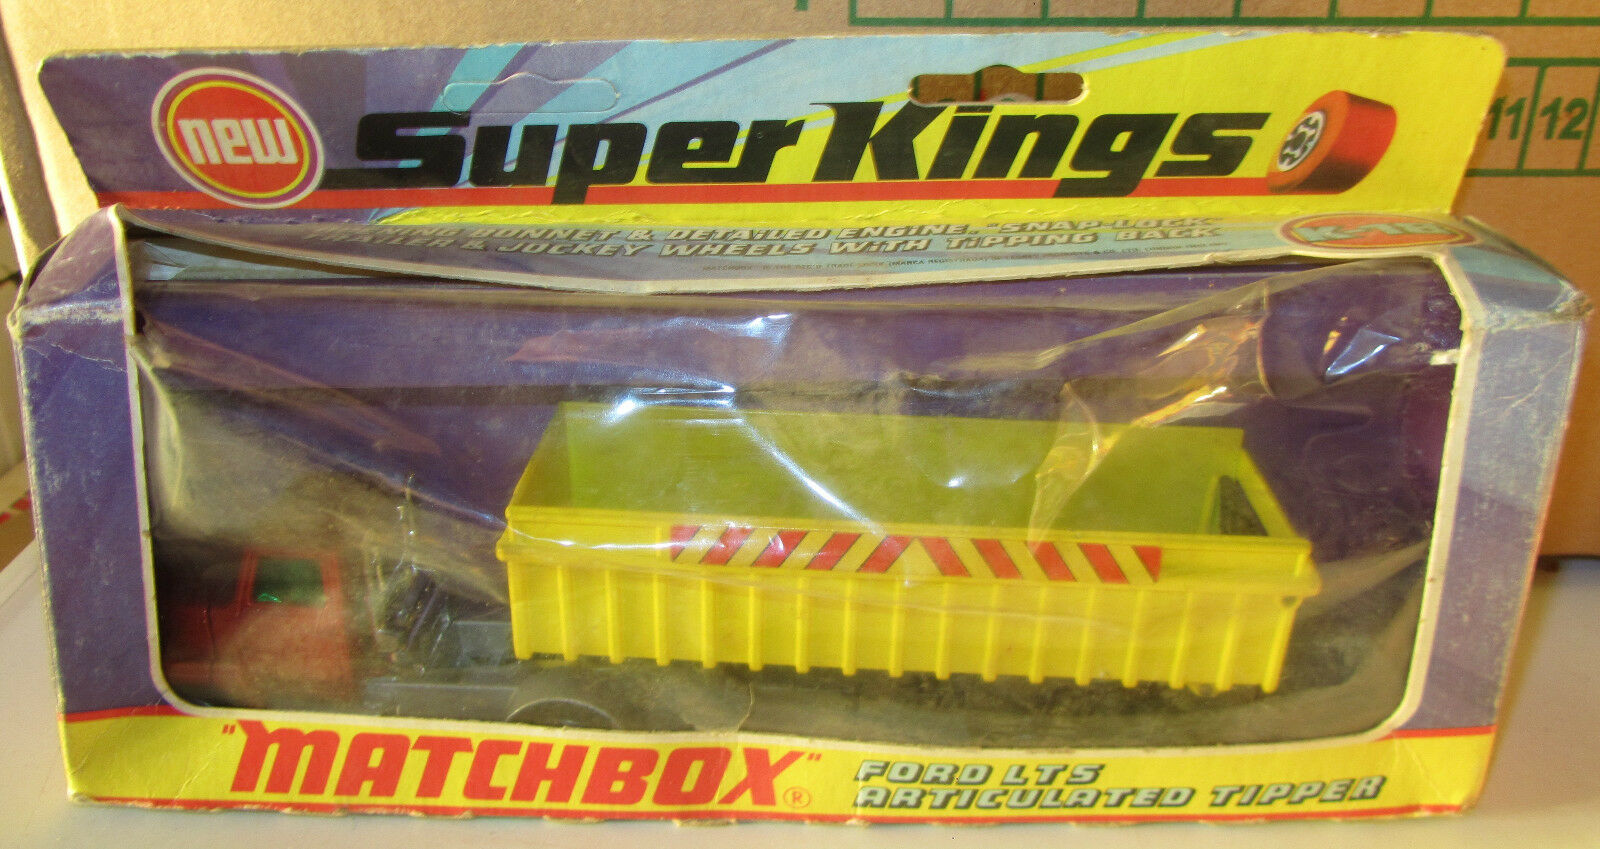 MATCHBOX súperKINGS K-18 Ford LTS Articulated Tipper SPESE GRATIS